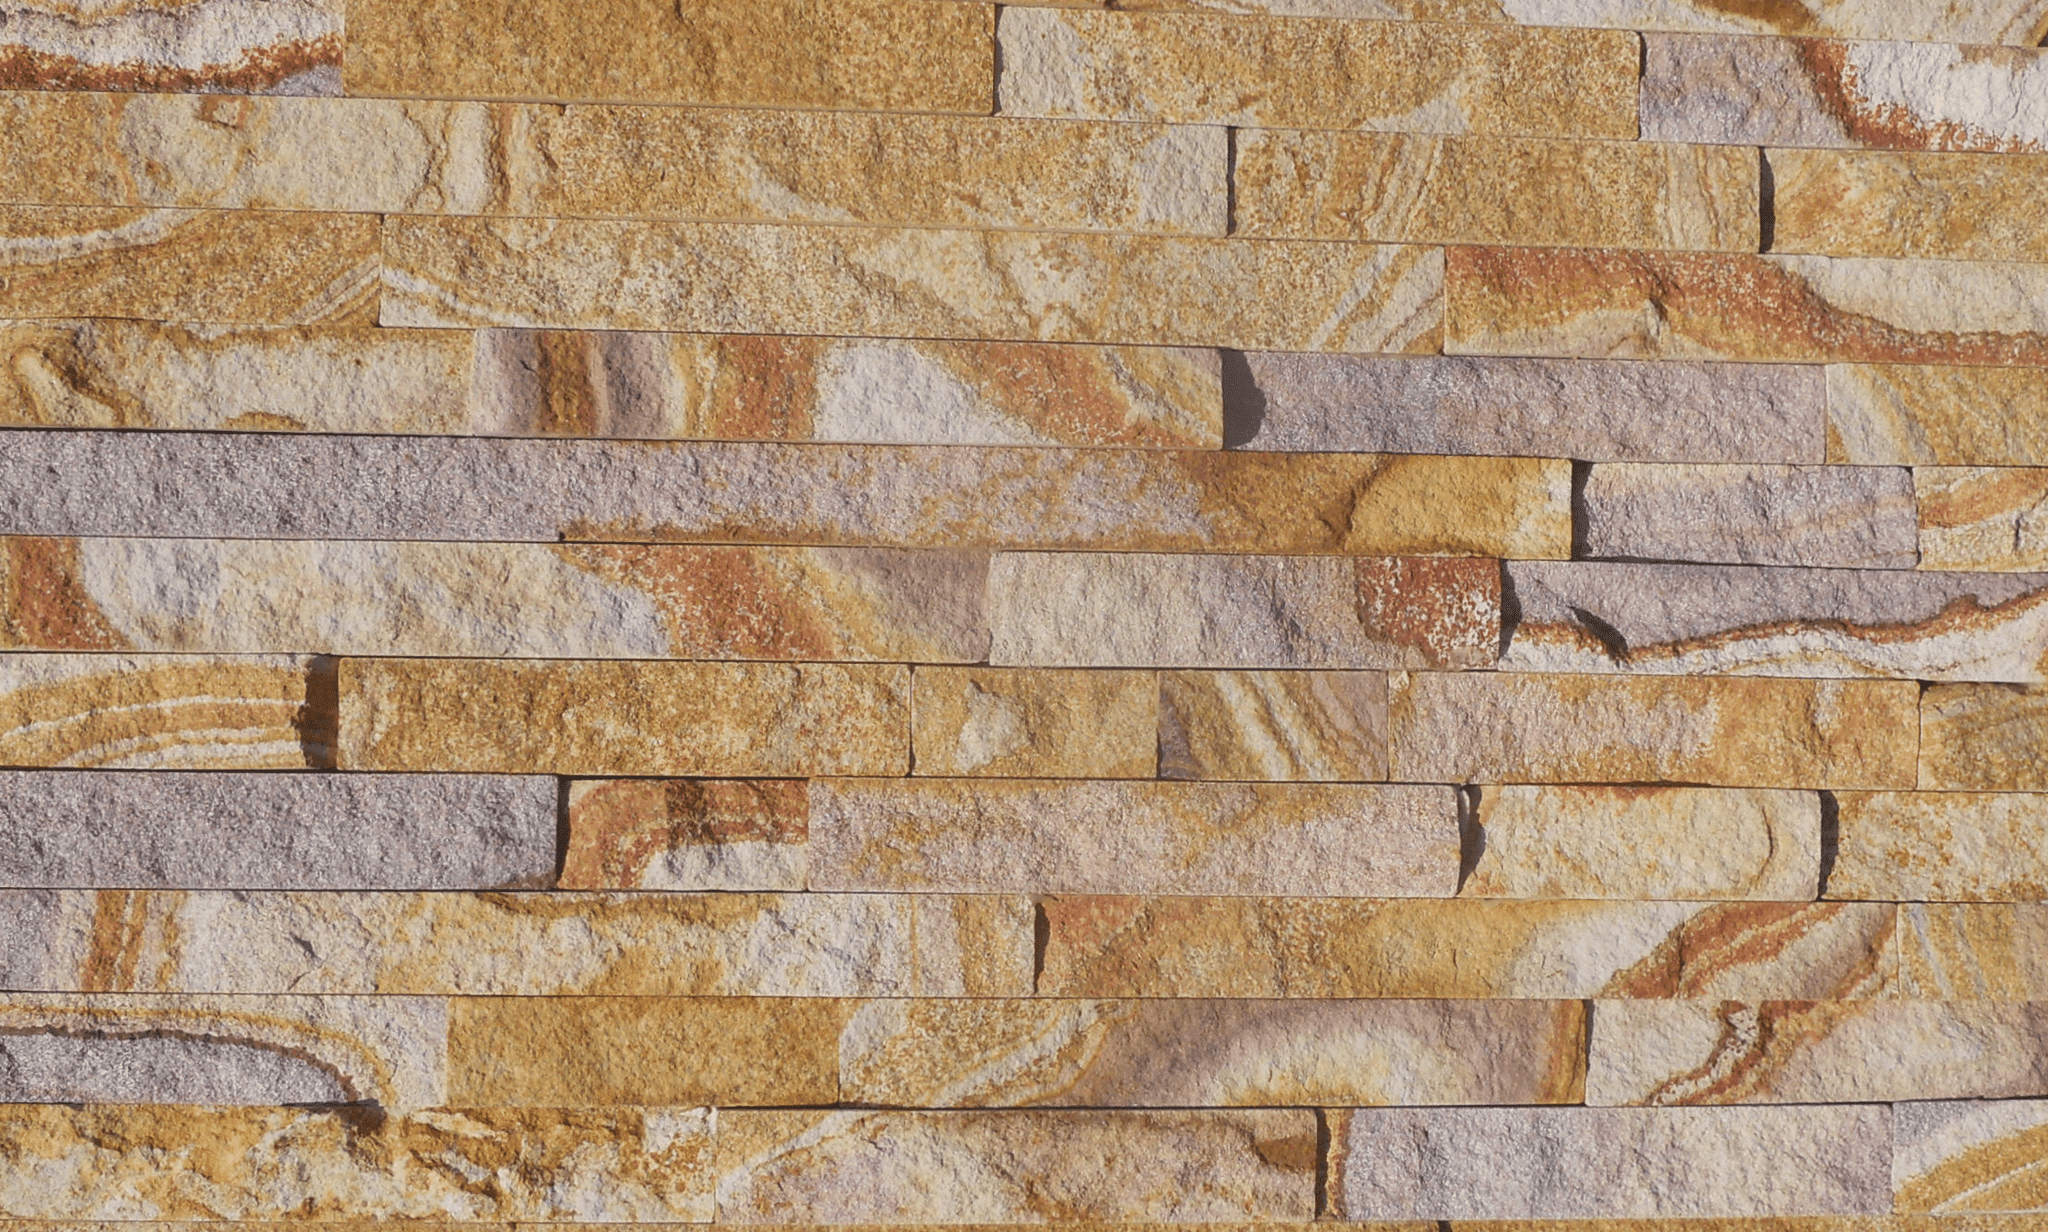 Hazel - Slate cheap stone veneer clearance - Discount Stones wholesale stone veneer, cheap brick veneer, cultured stone for sale